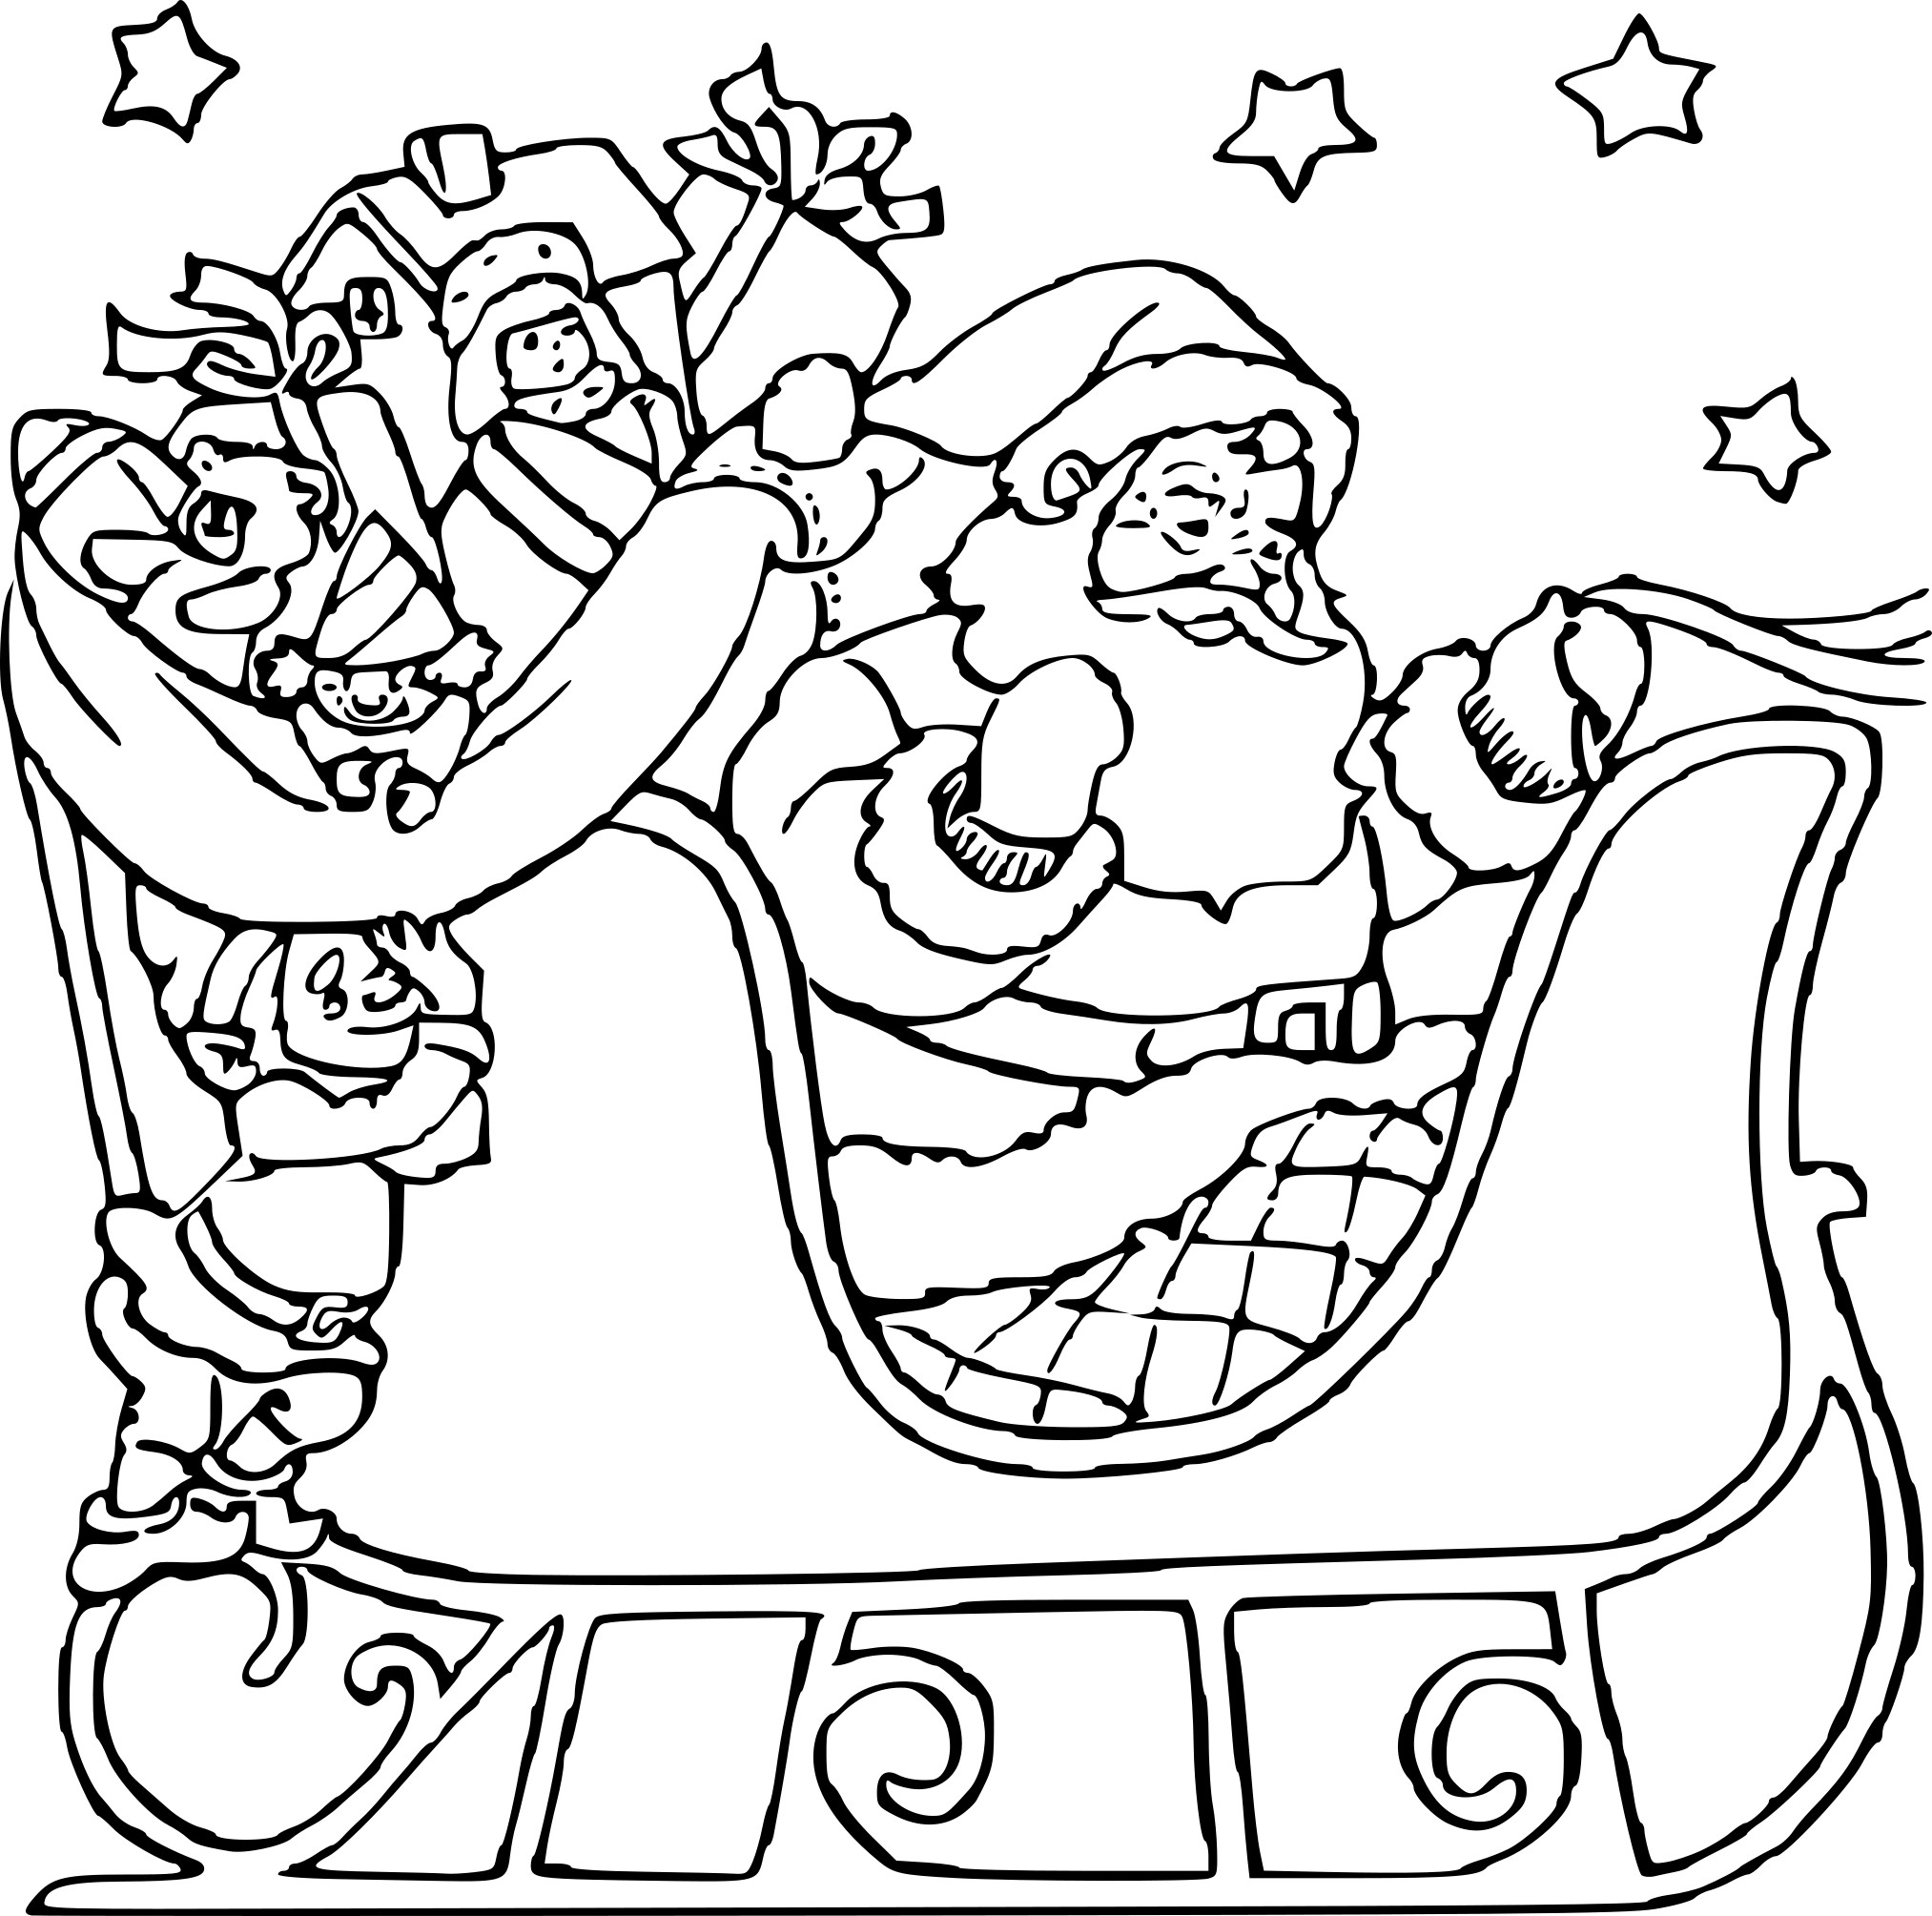 Unique Lutin Fille Du Pere Noel Coloriage | 30000 ++ collections de pages à colorier imprimables